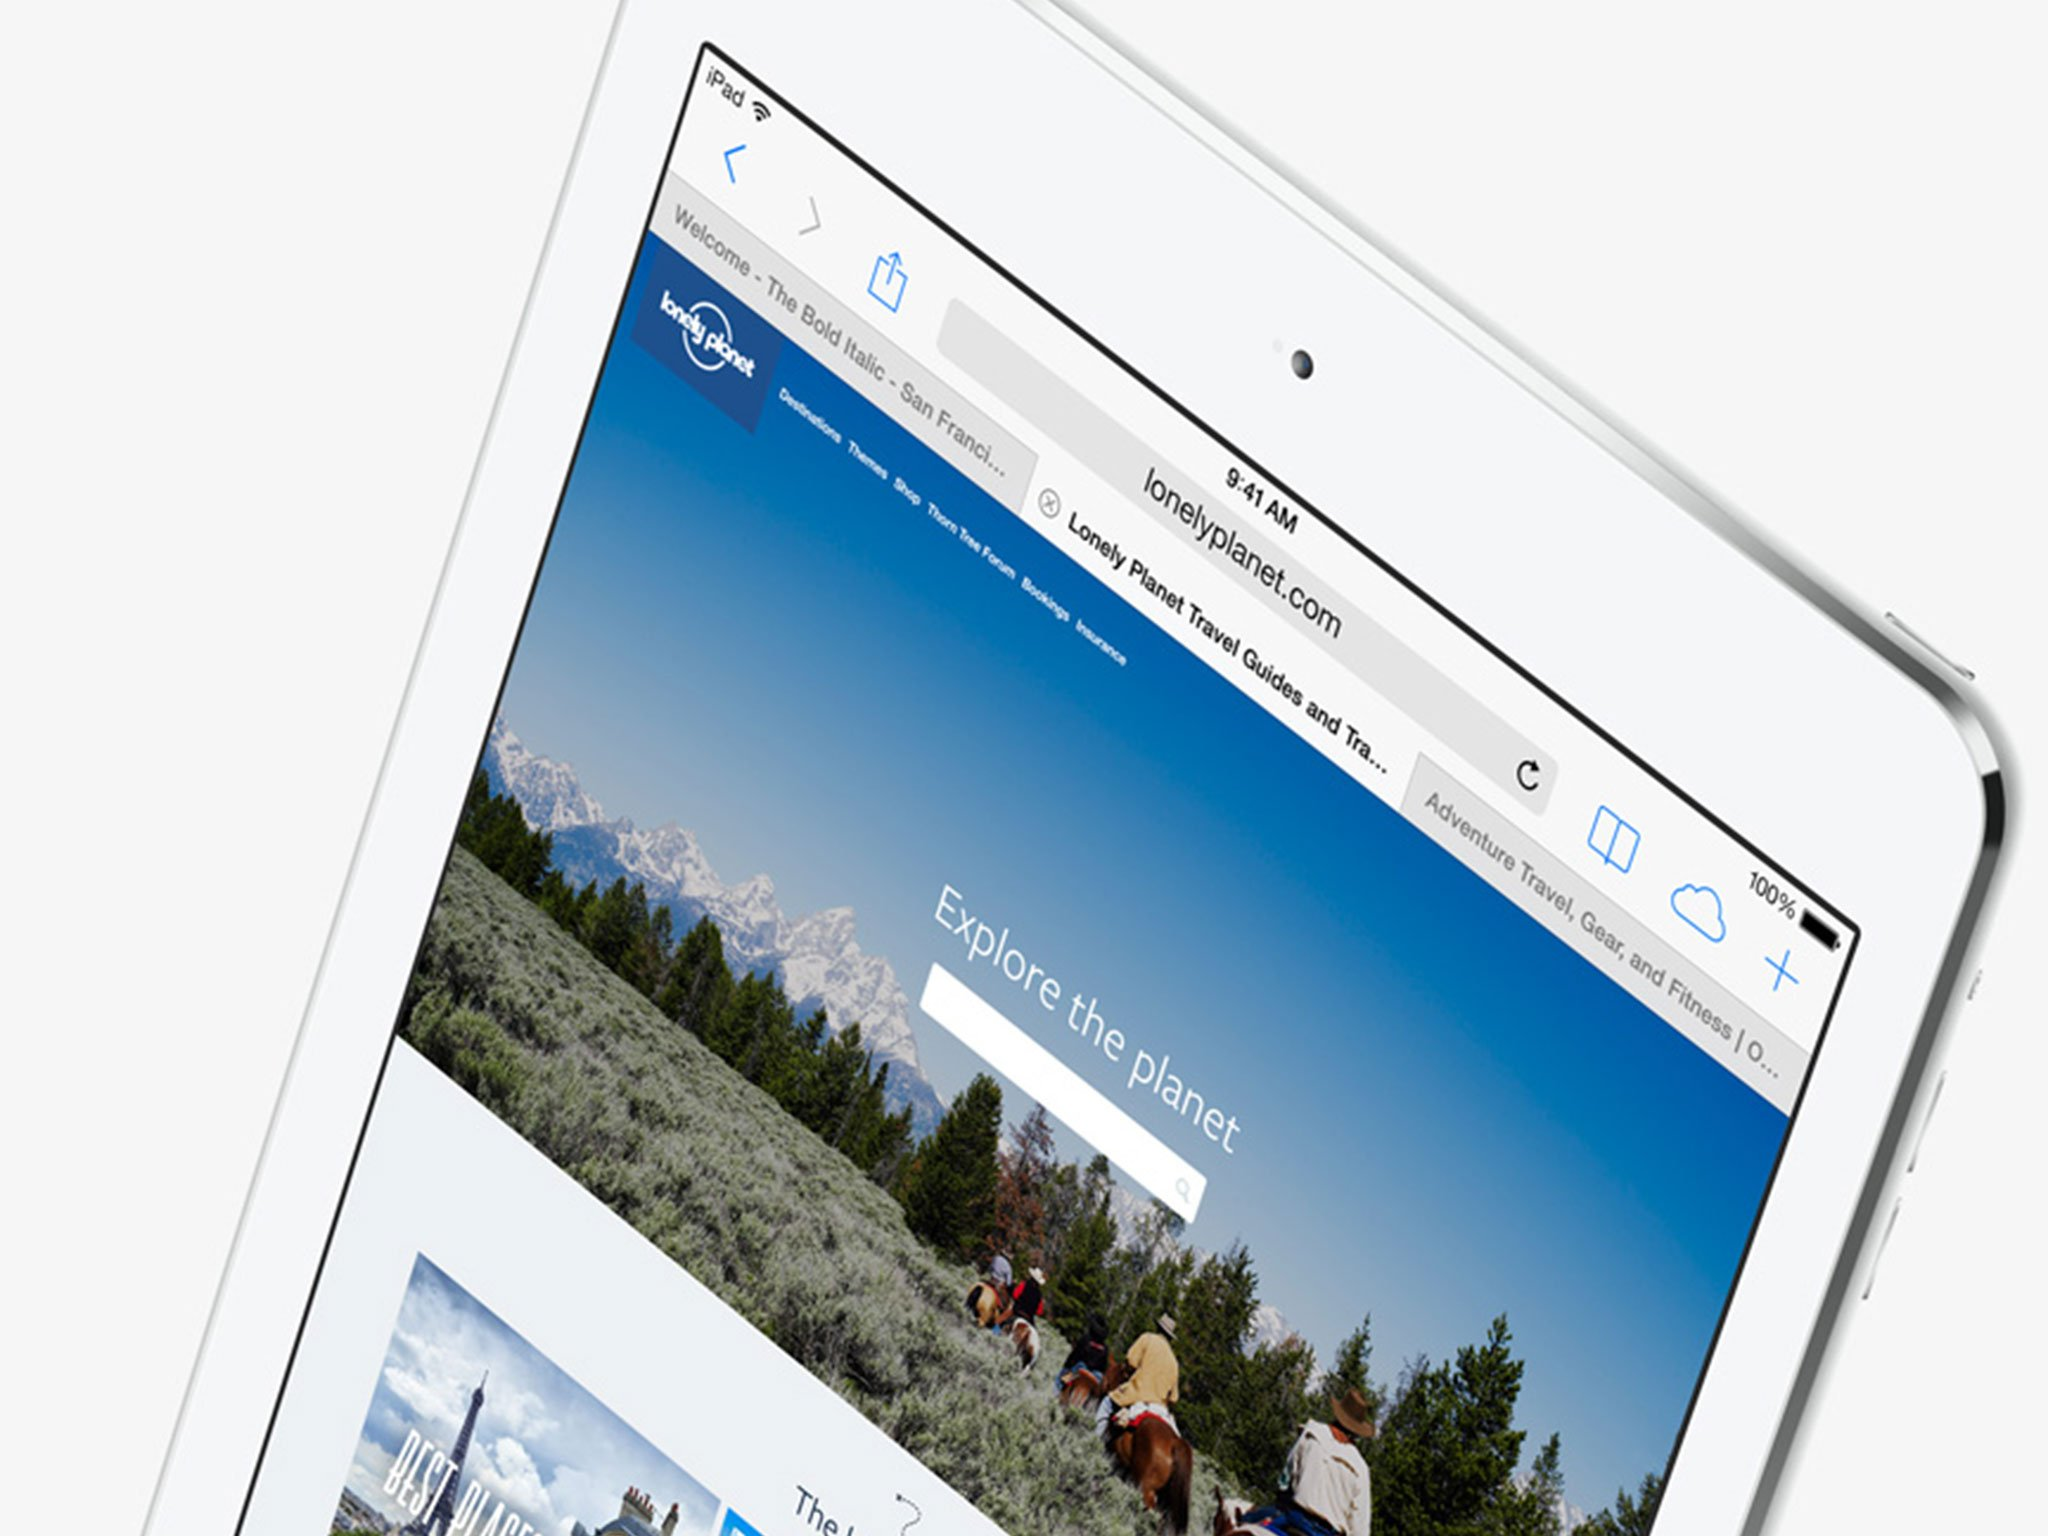 iPad Air reservations go live October 30 in Hong Kong and China